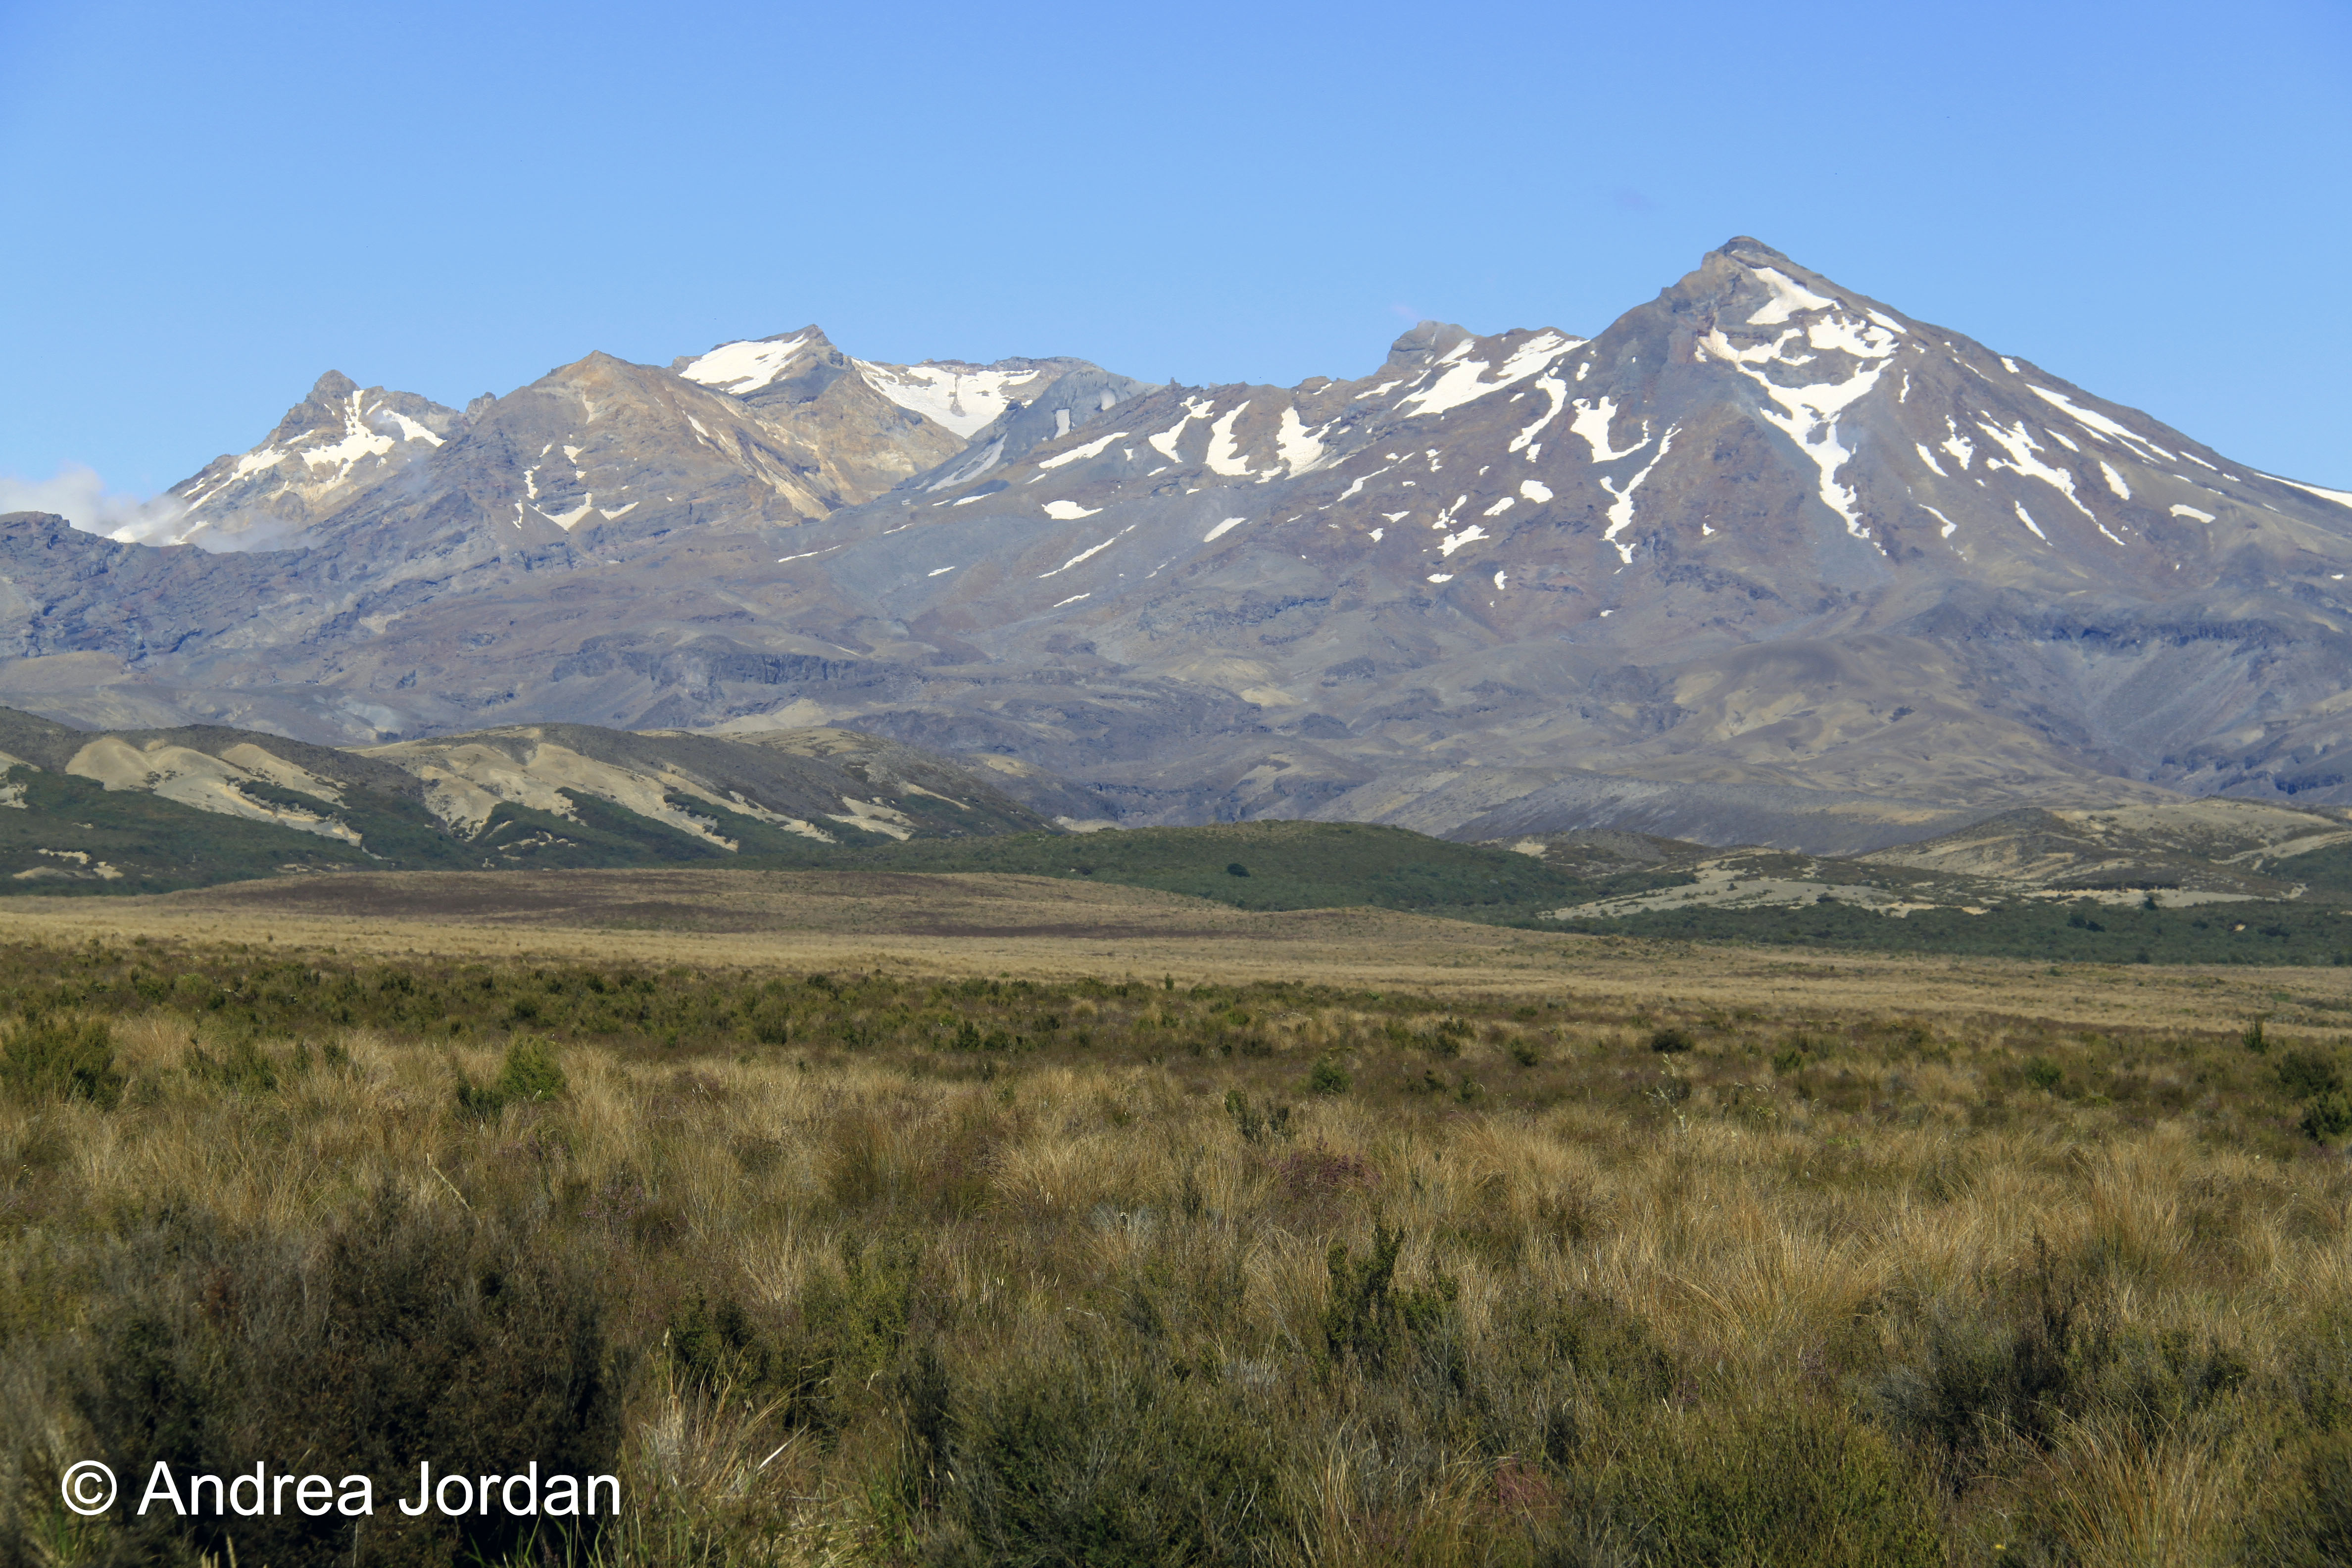 Tongariro, part of the Central Plateau of the North Island